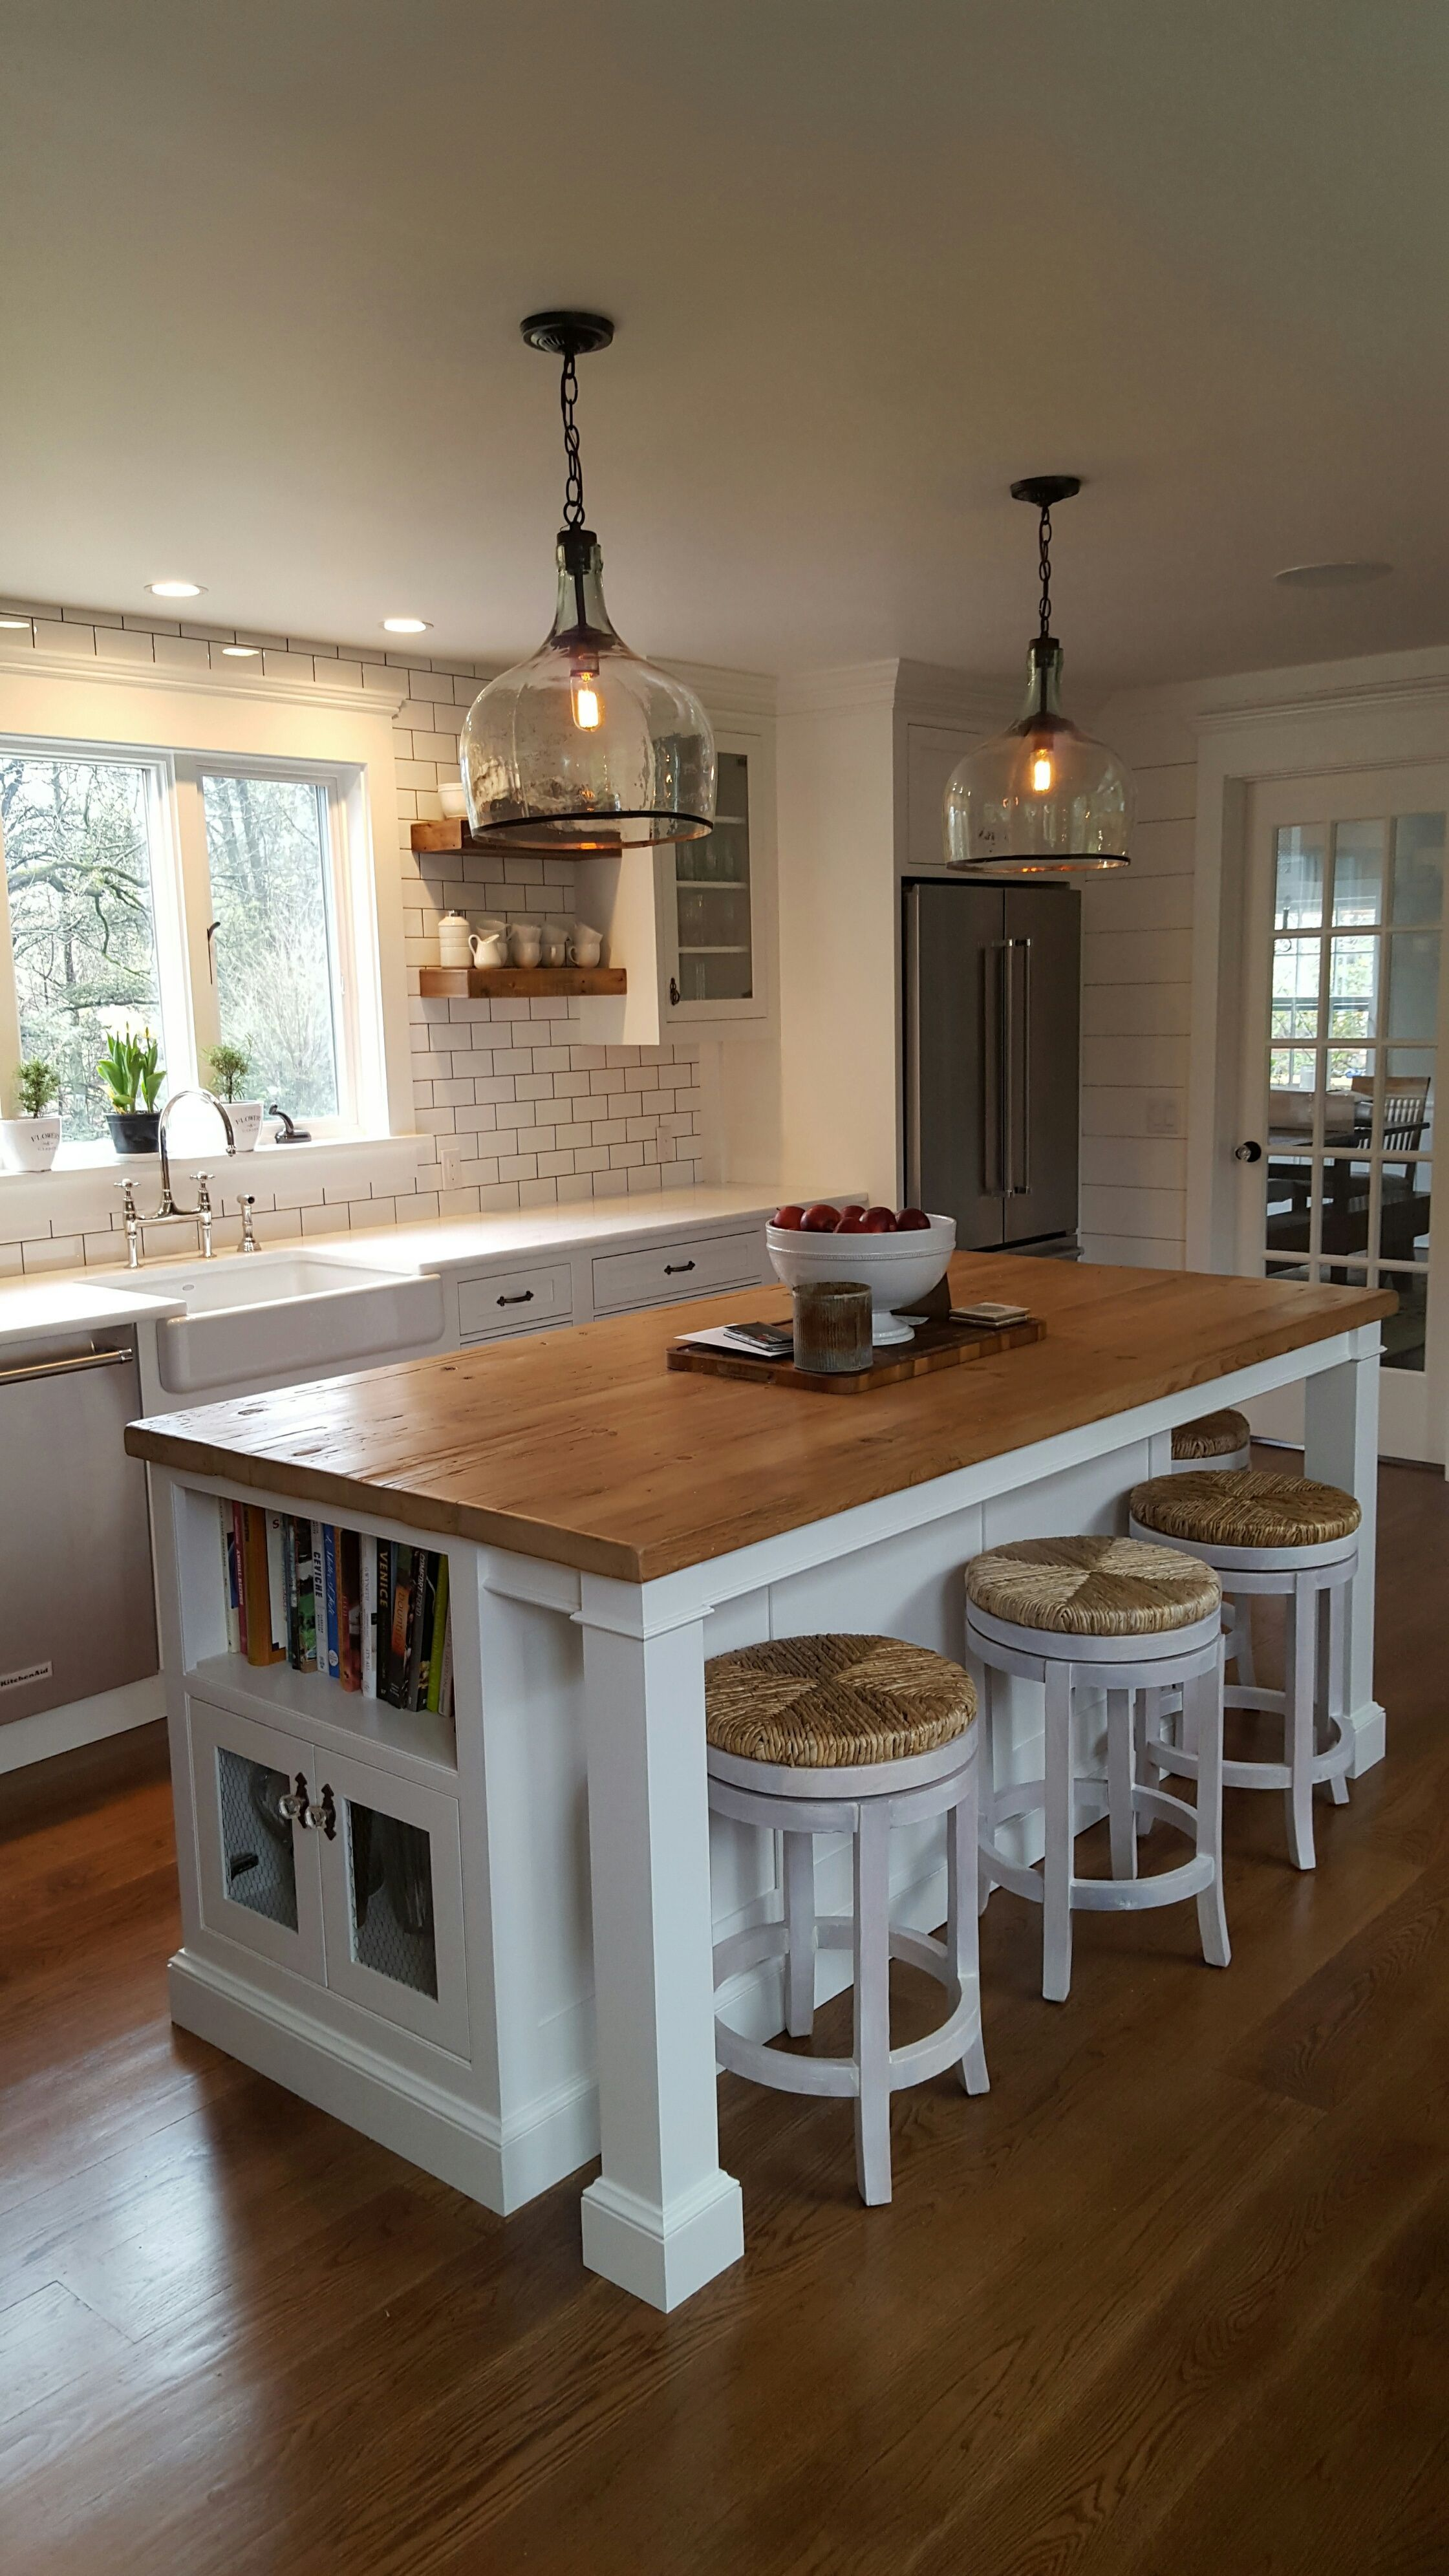 13 Beautiful Pictures of Kitchen Islands ideas on a Budget